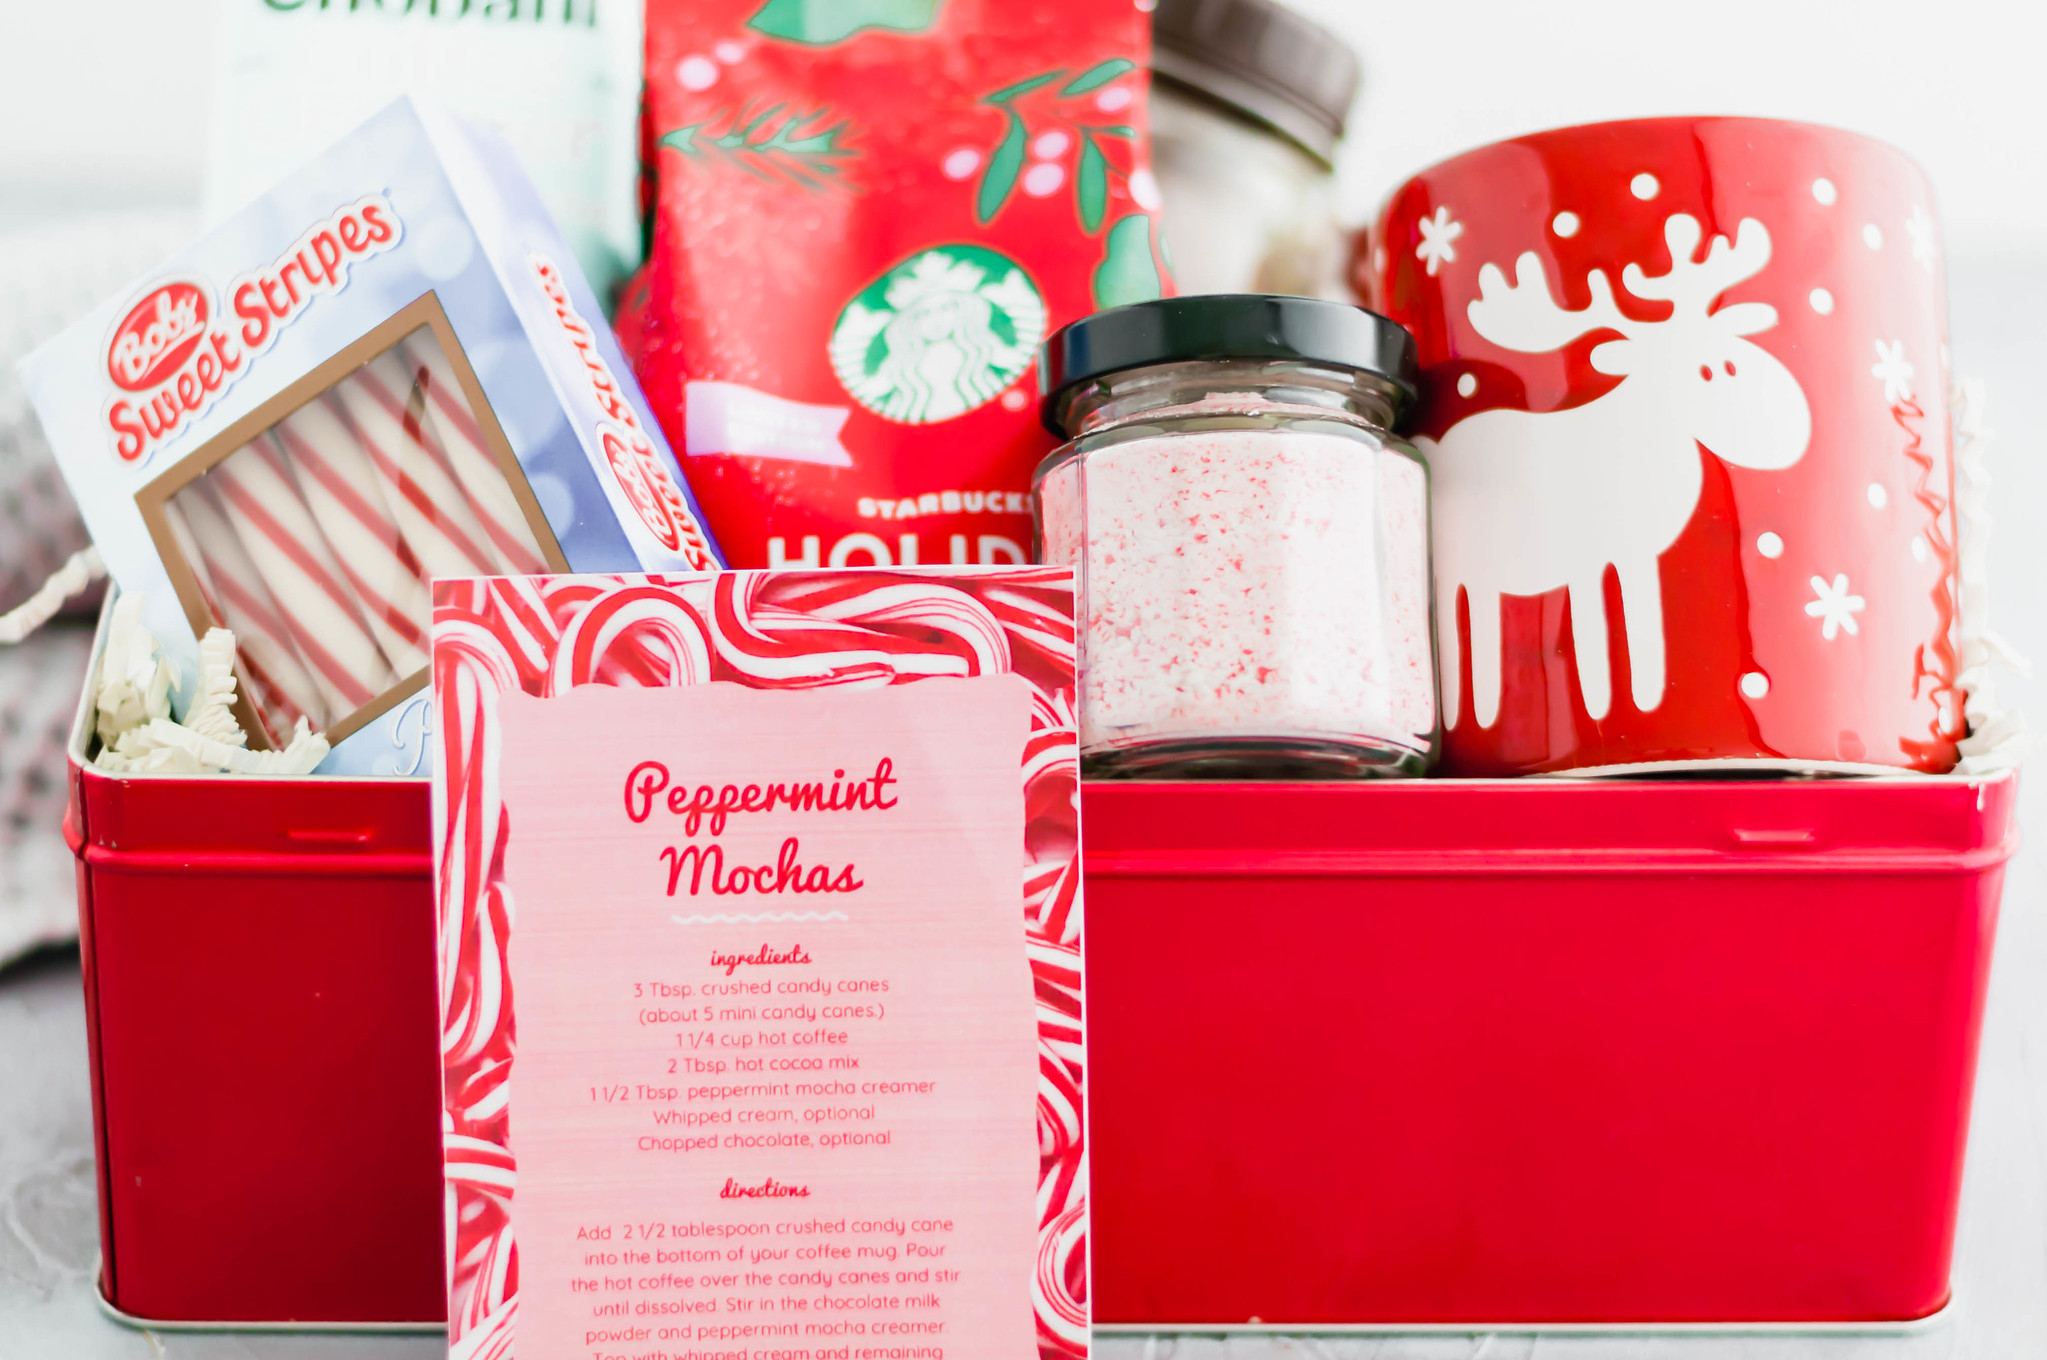 Looking for a fun, festive gift for a coffee lover in your life?! This Peppermint Mocha Kit is simple to put together and totally unique. All the ingredients required to make my delicious peppermint mochas in a fun tin or basket. Include the free printable recipe card so the recipient knows just how to make their delicious peppermint mocha at home.